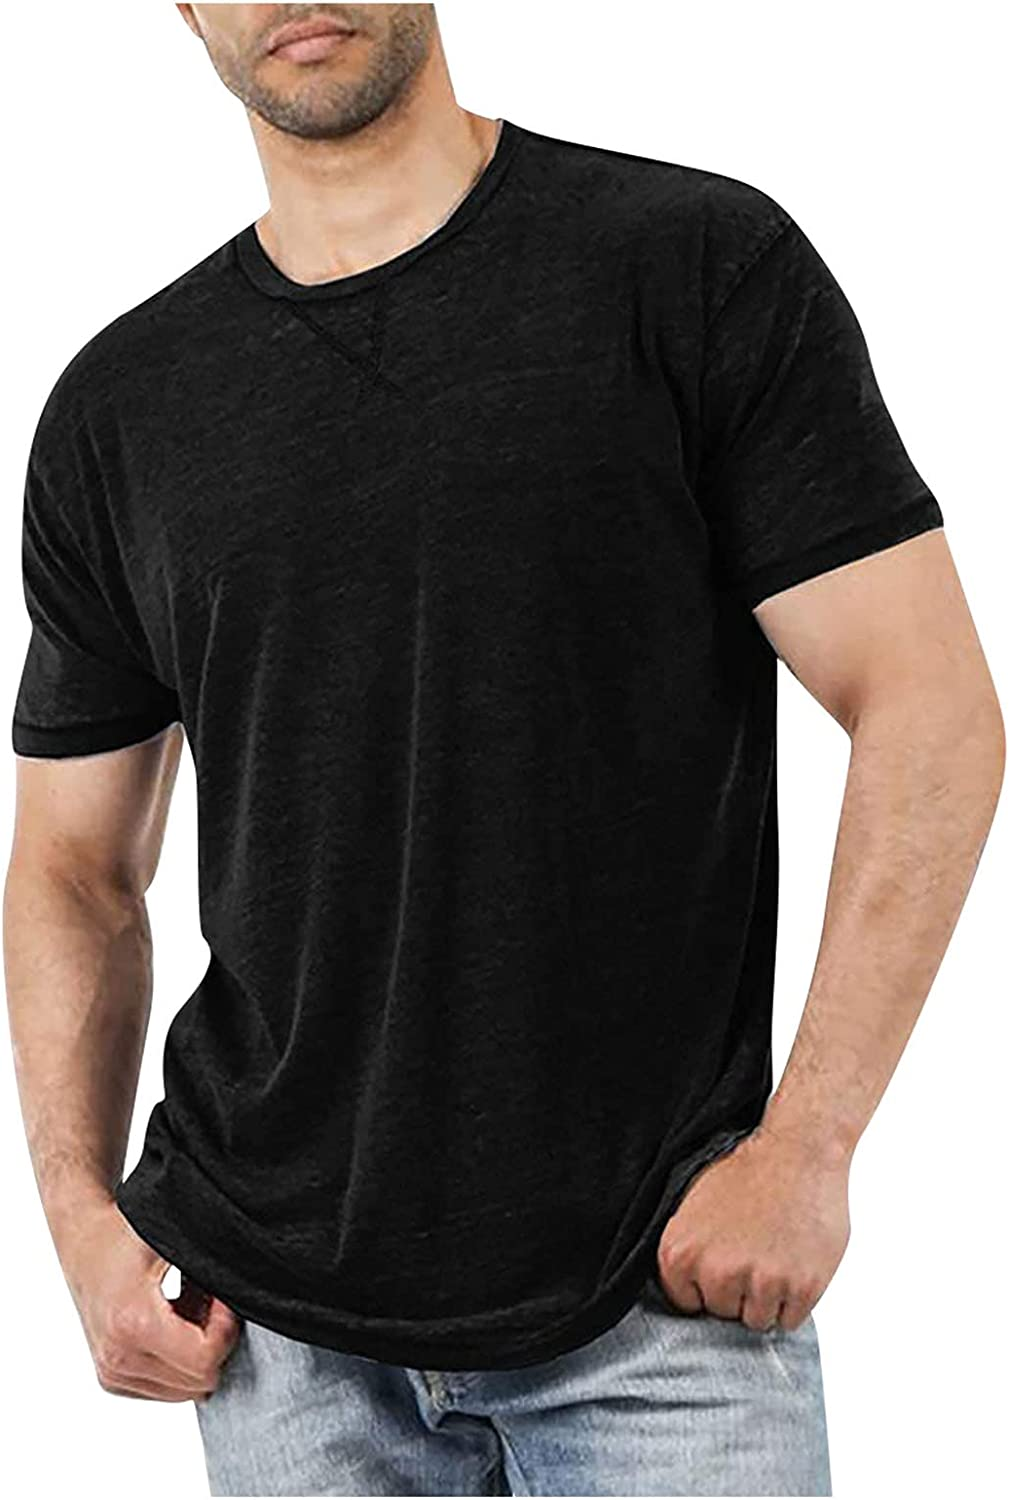 Men's Soild Color Short Sleeve T-Shirts Comfy Casual Blouse Round Neck Tee Shirt Summer Soft Loose Tops